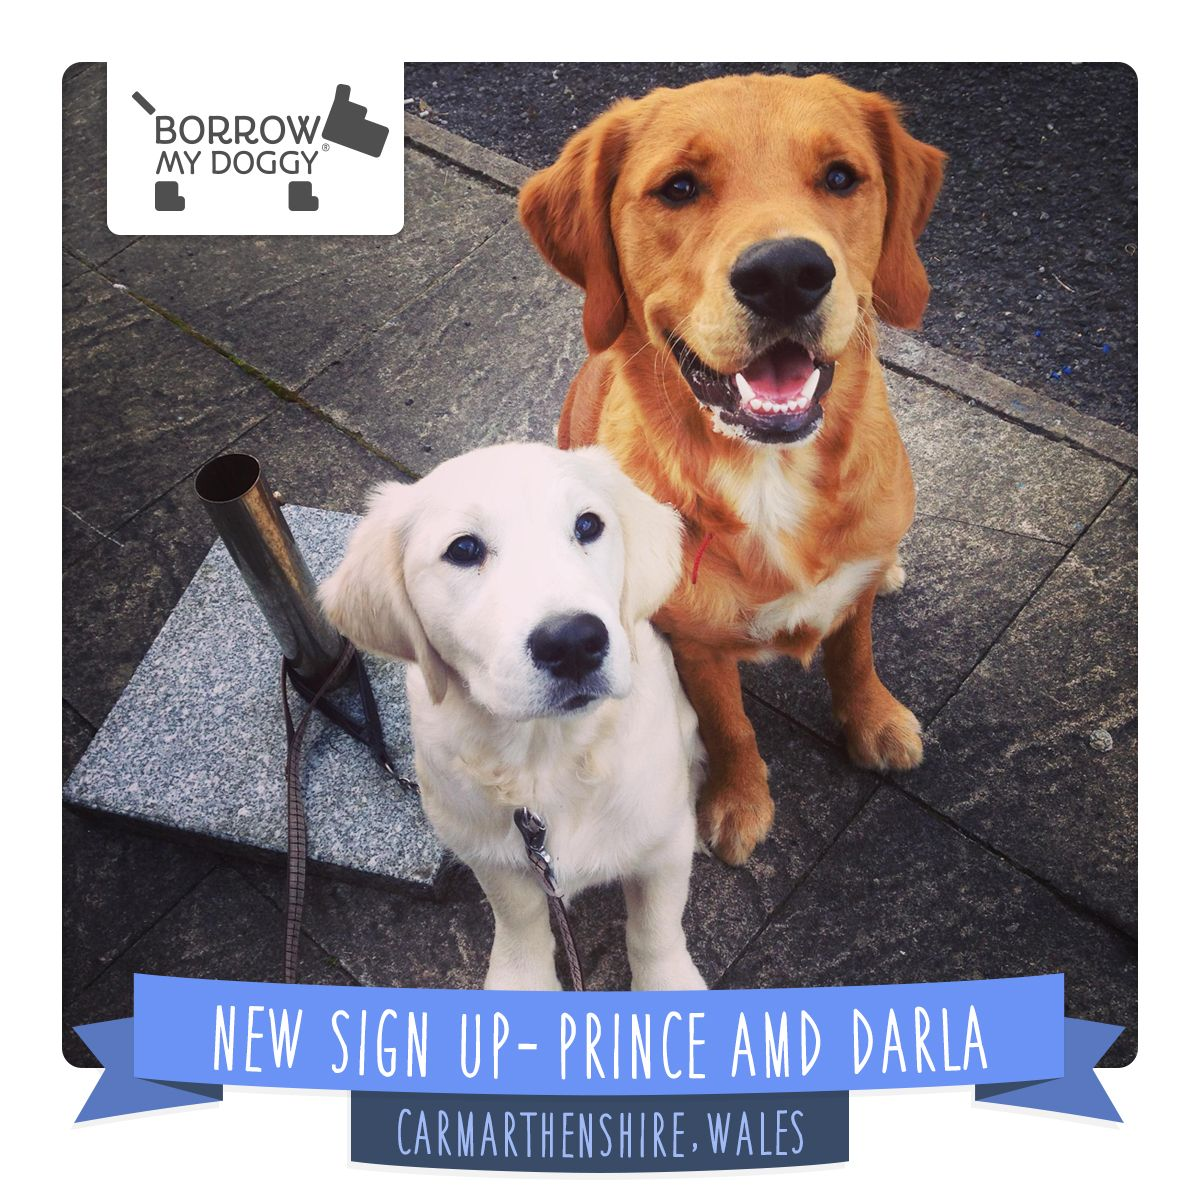 #NewDoggySignUp Prince and Darla are a loving, fun and energetic duo who enjoy attention all day, every day :)